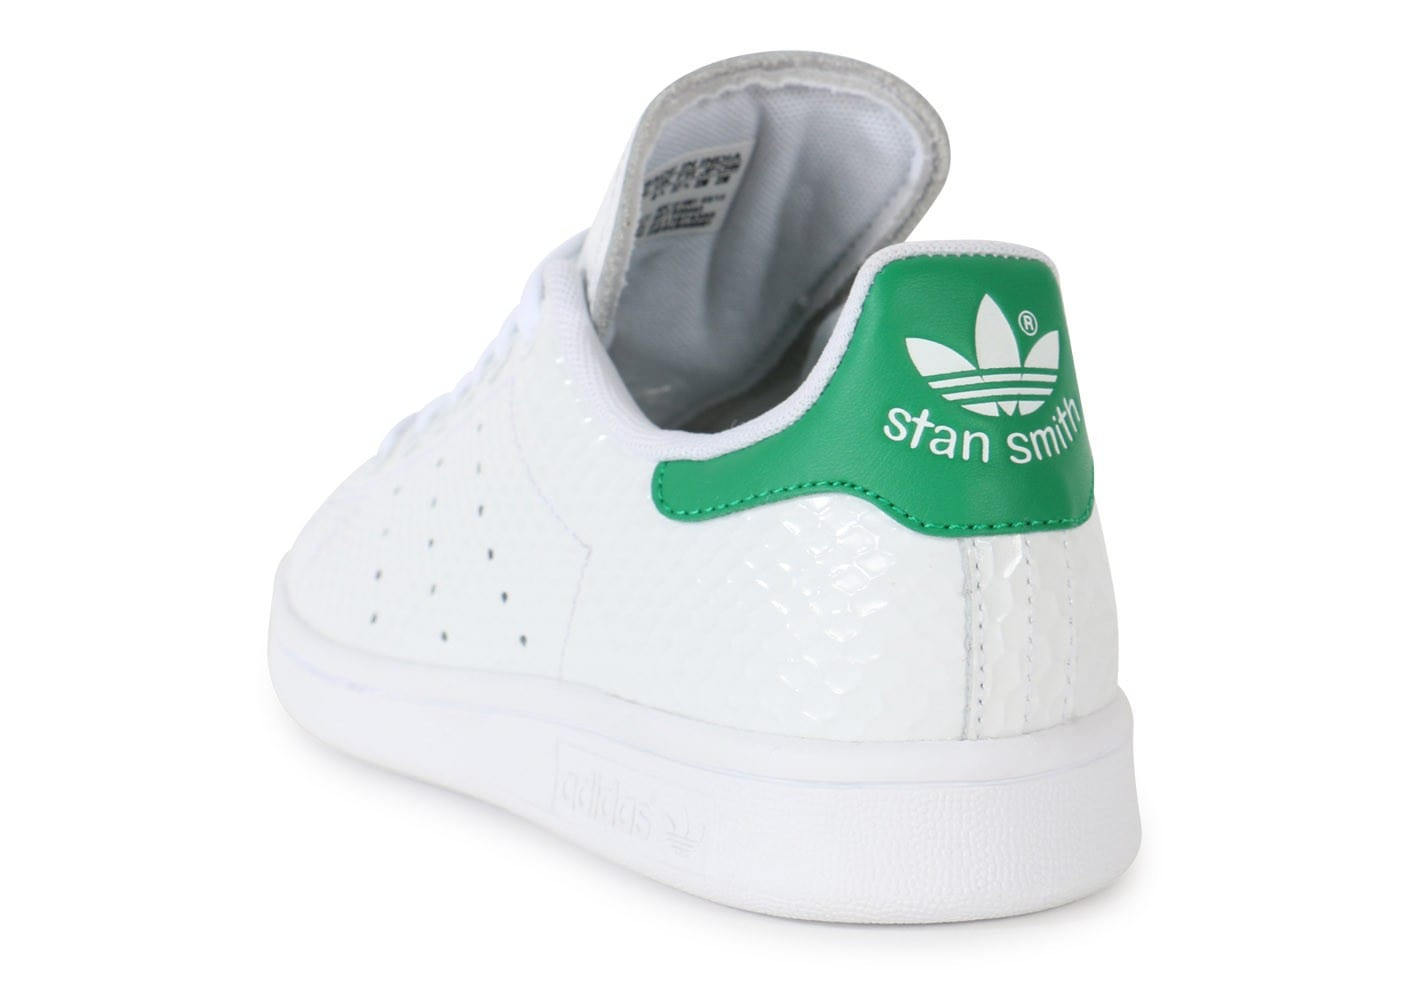 Et Verte Nid Blanche Smith chaussures D Stan Chaussure Adidas TKJcl1F